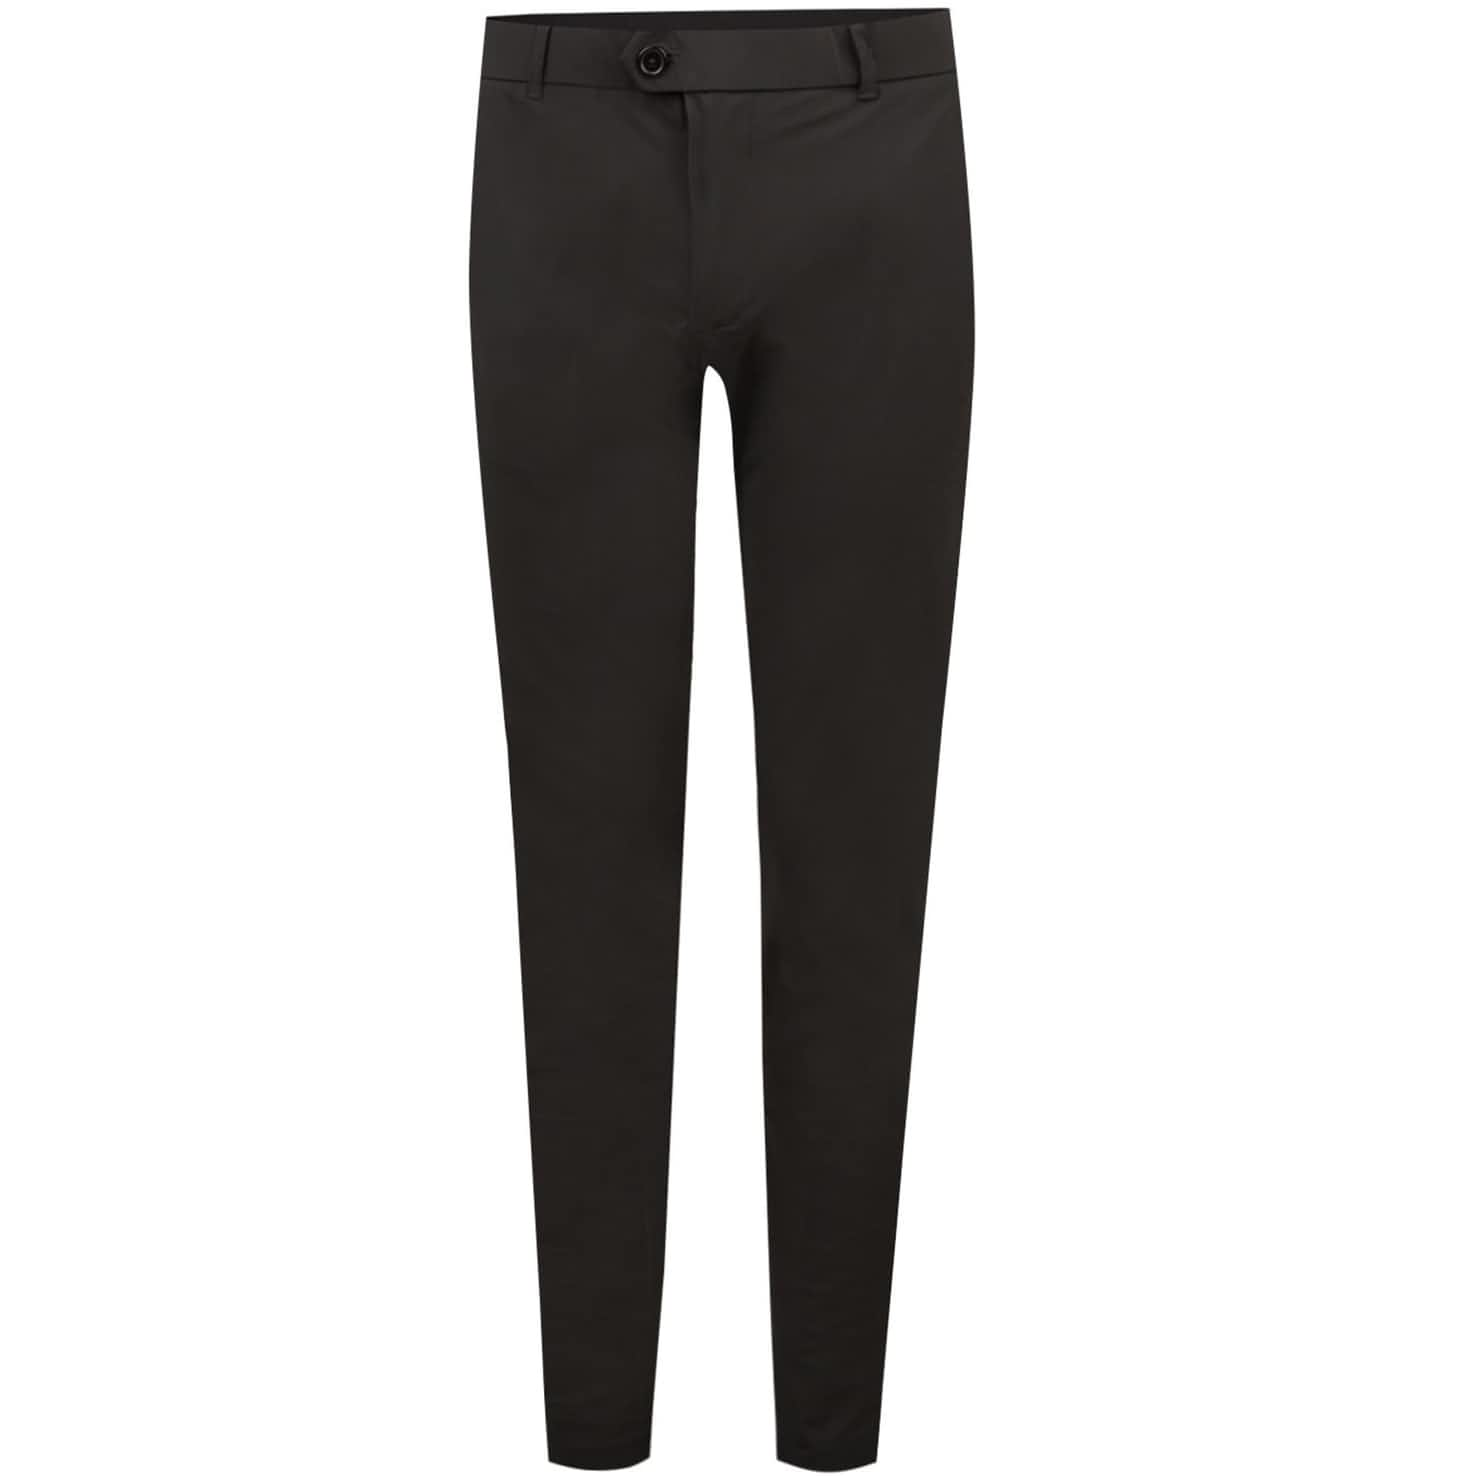 Montauk Trousers Shepherd - 2020